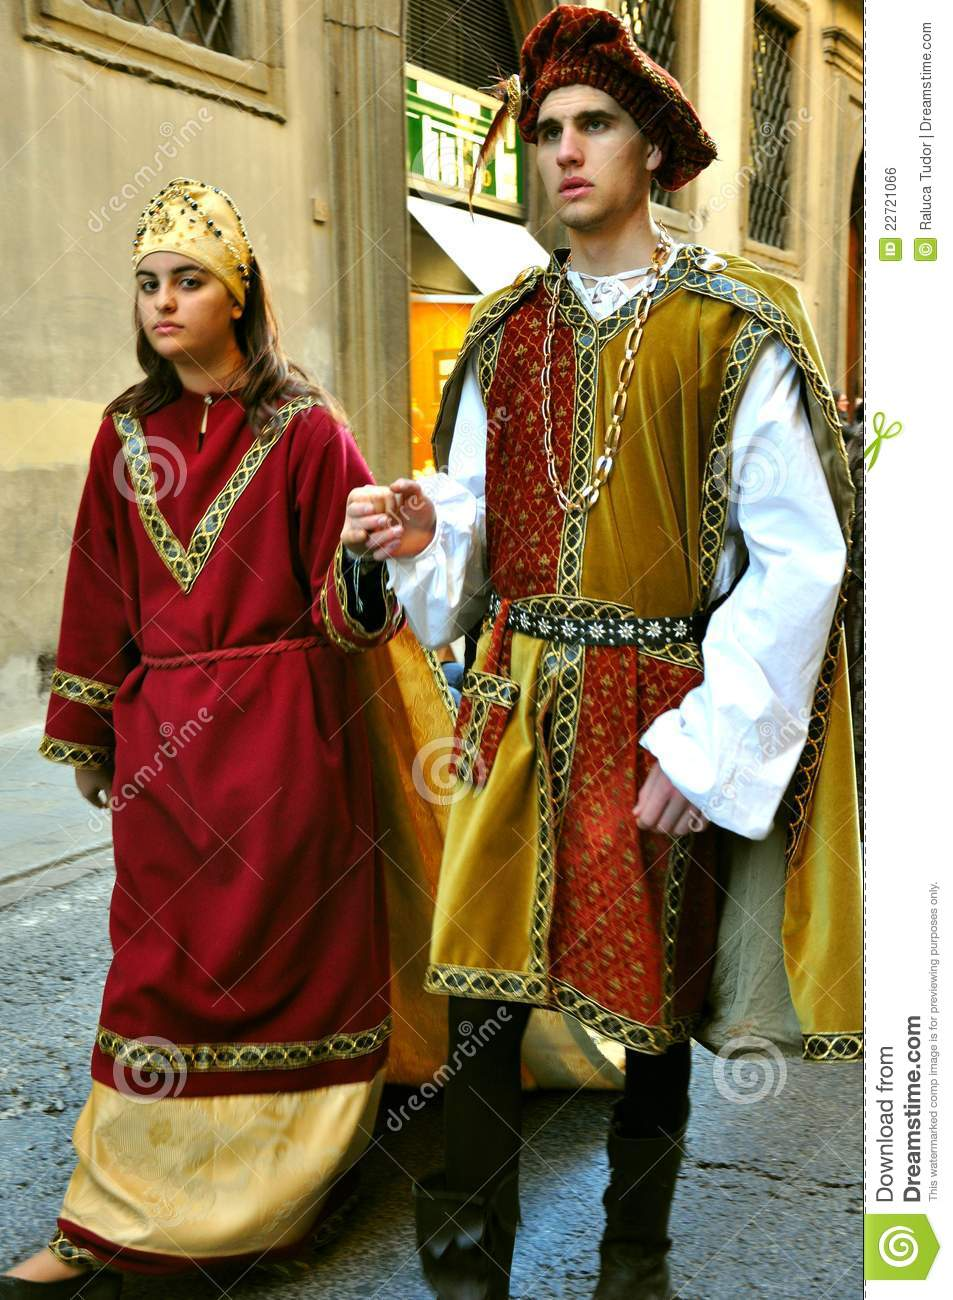 medieval parade in italy editorial photo image of march